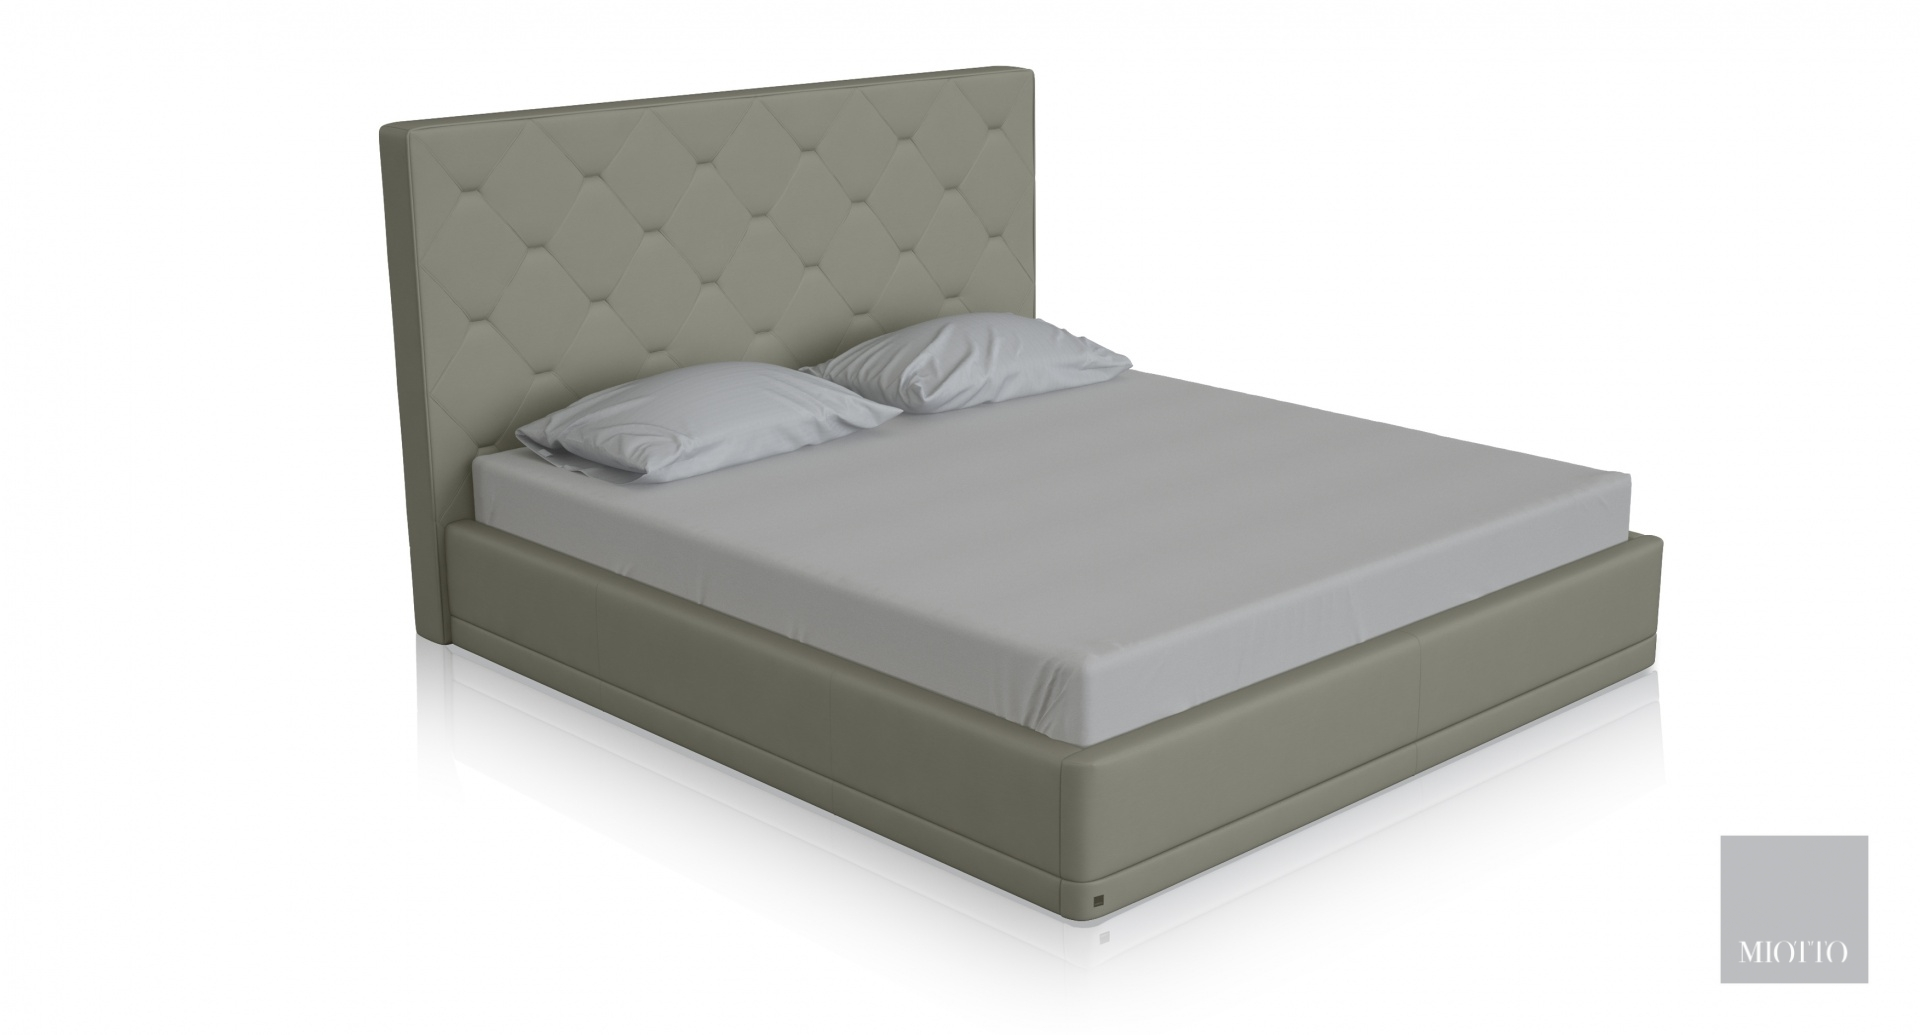 miotto_piana taupe leather bed T miottto design furniture